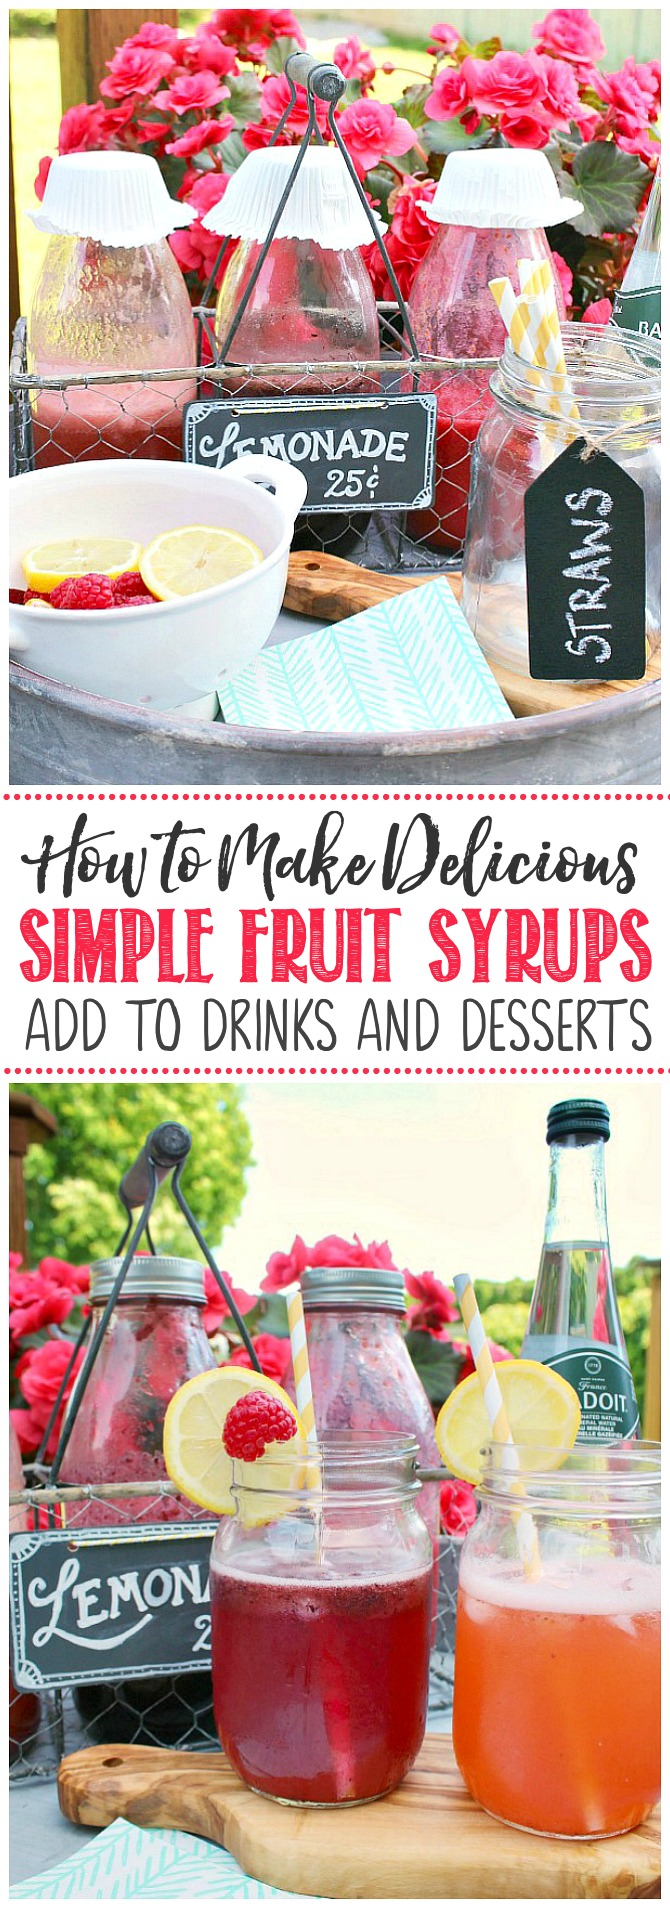 Delicious fruit syrups in glass jars to flavor lemonade.